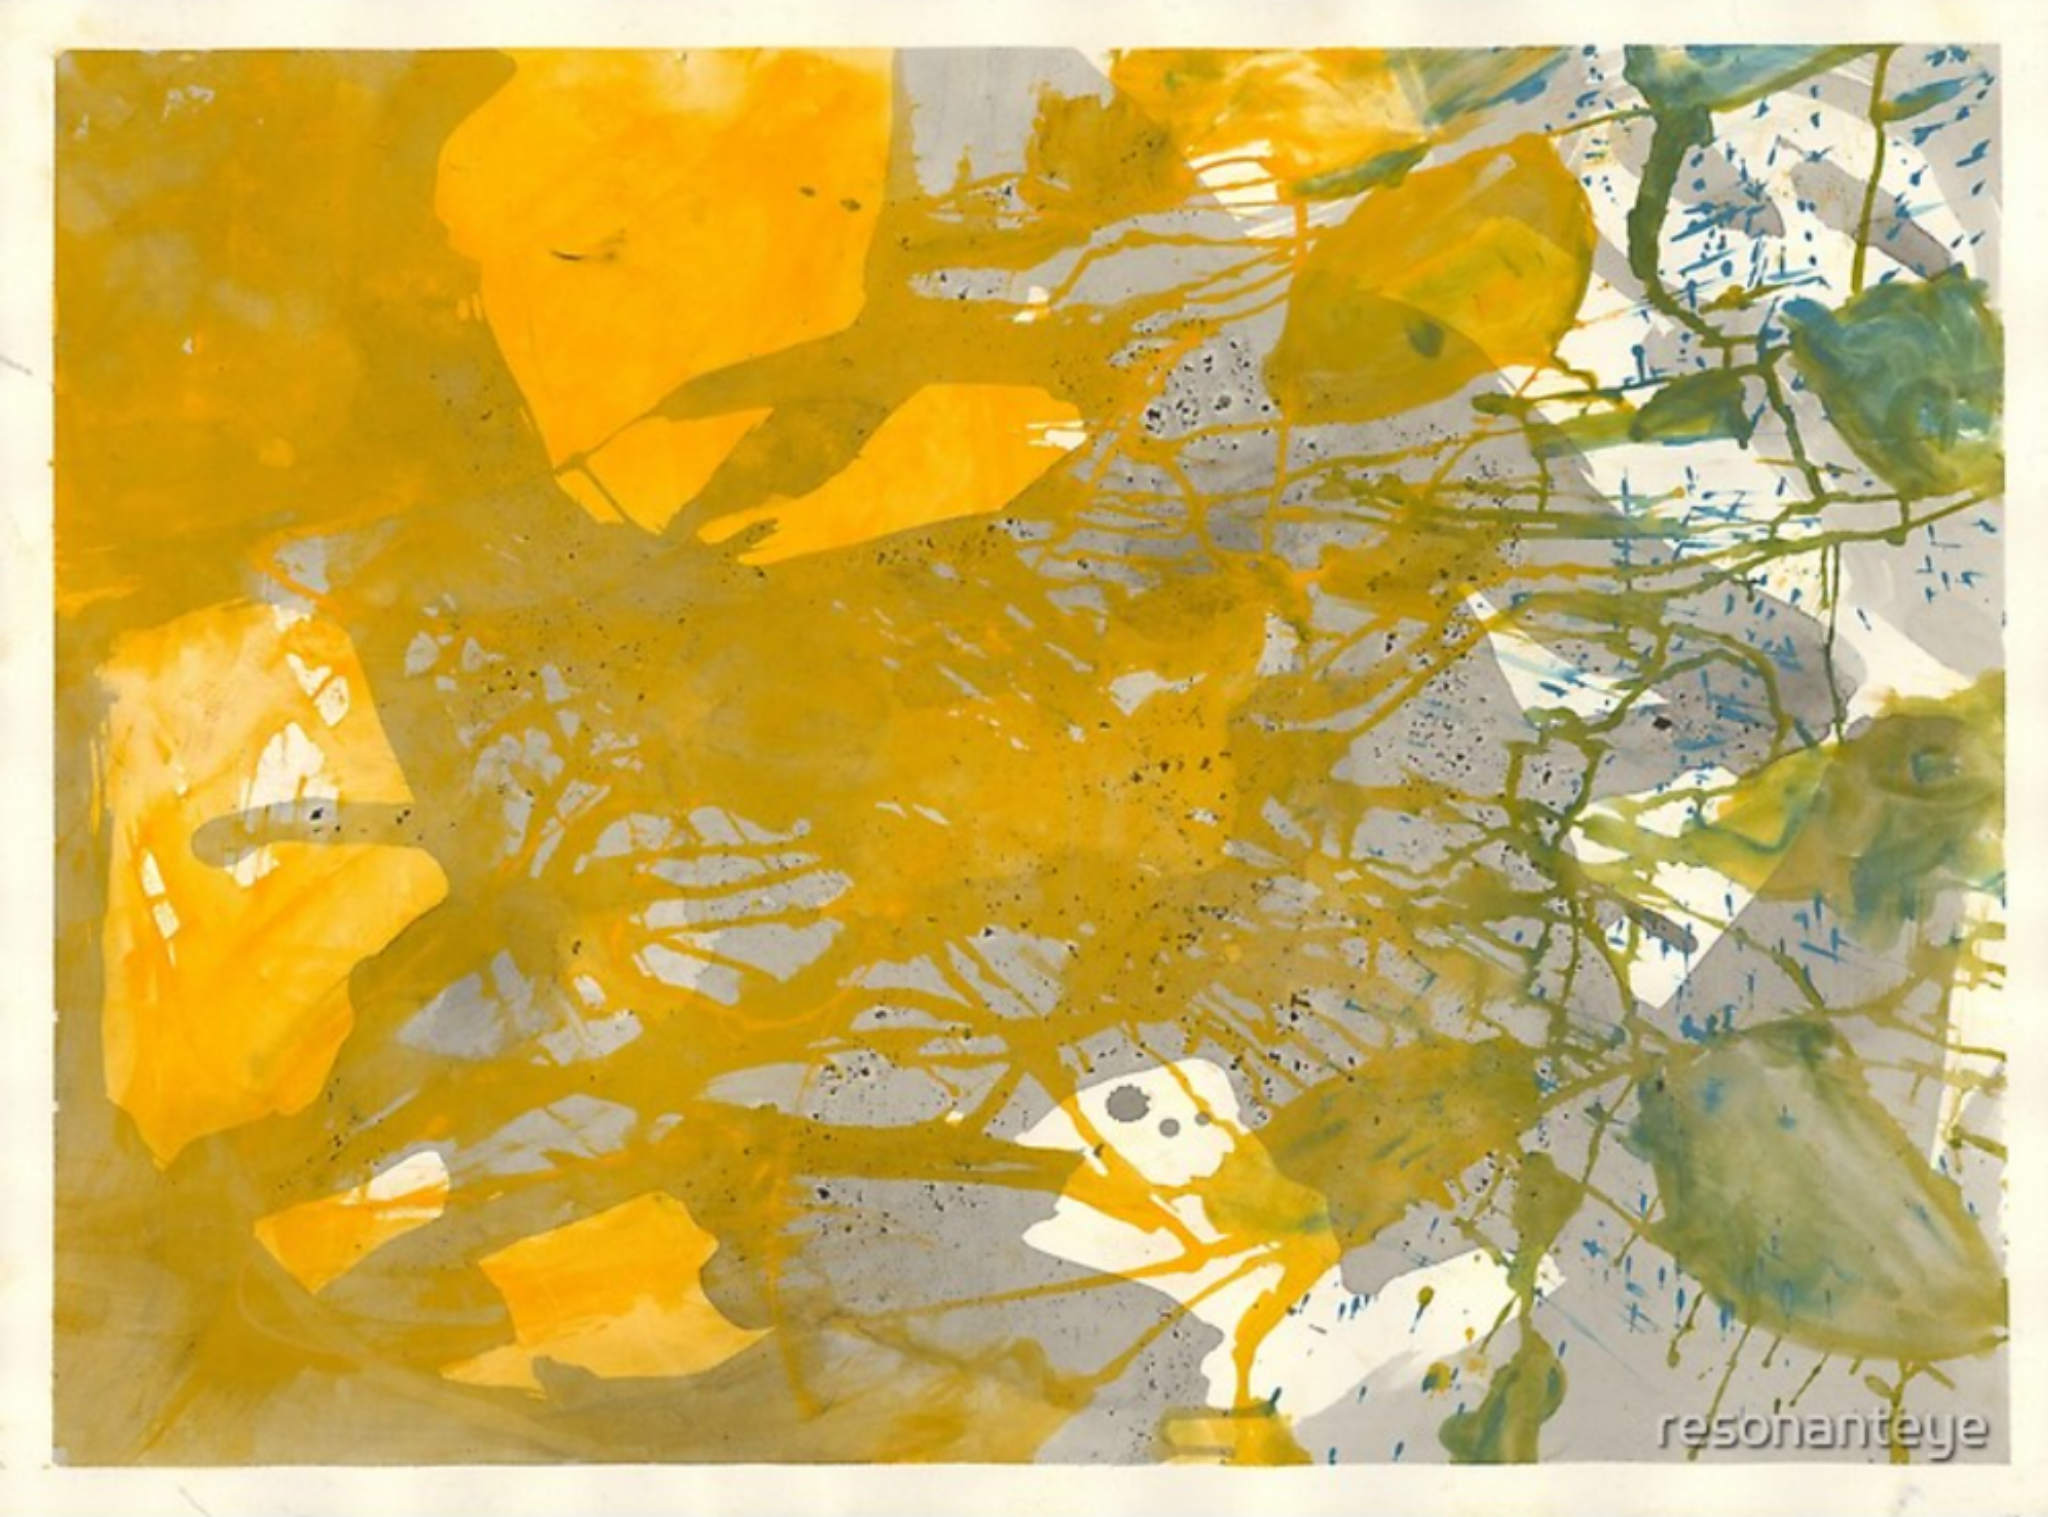 Paintings from Quarantine: Florida, Swamp Drain